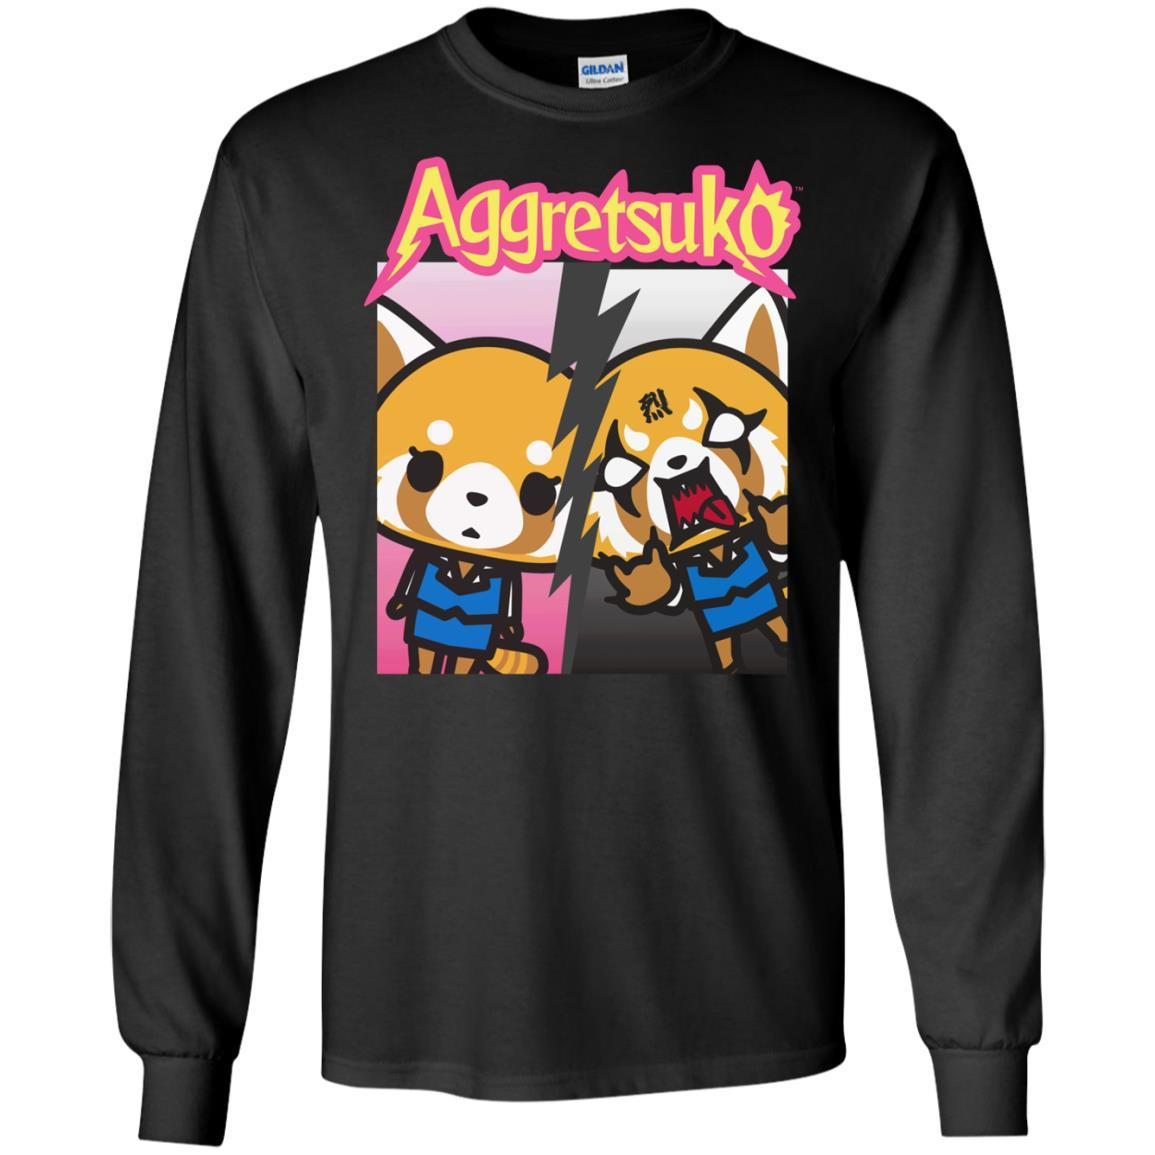 Aggretsuko Split Personality Tee Shirt Long Sleeve 240